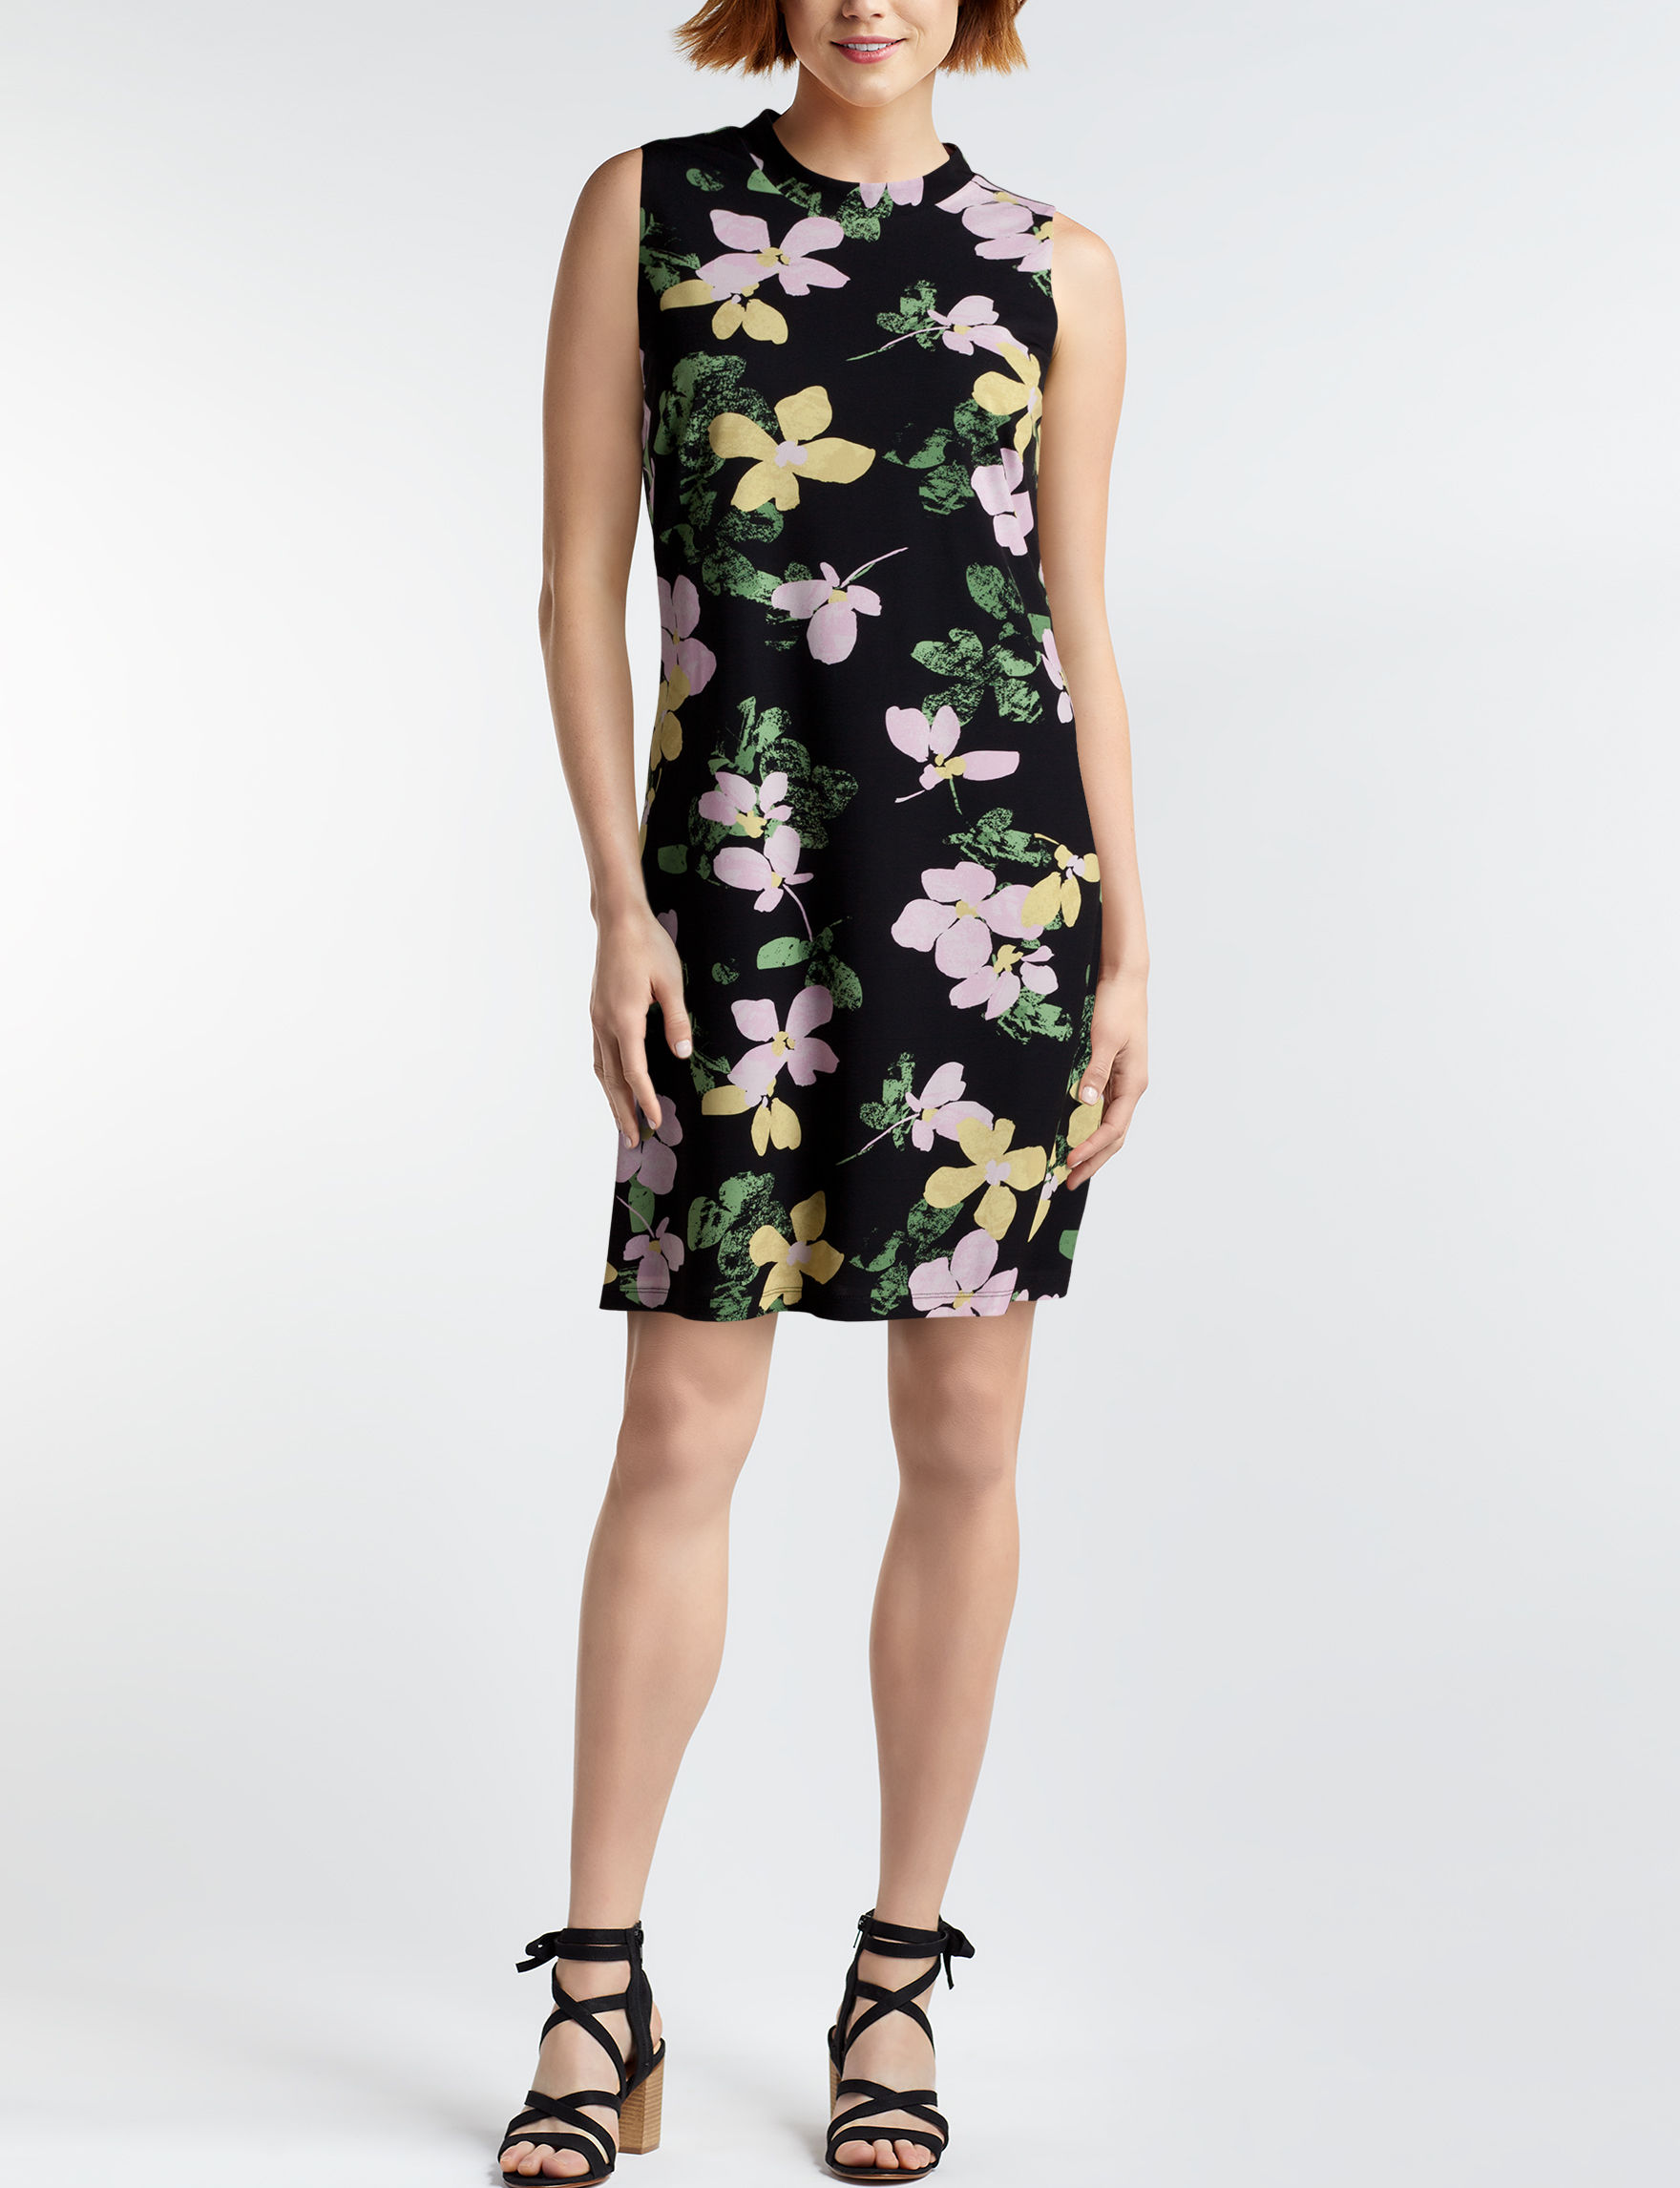 Nine West Black Floral Everyday & Casual A-line Dresses